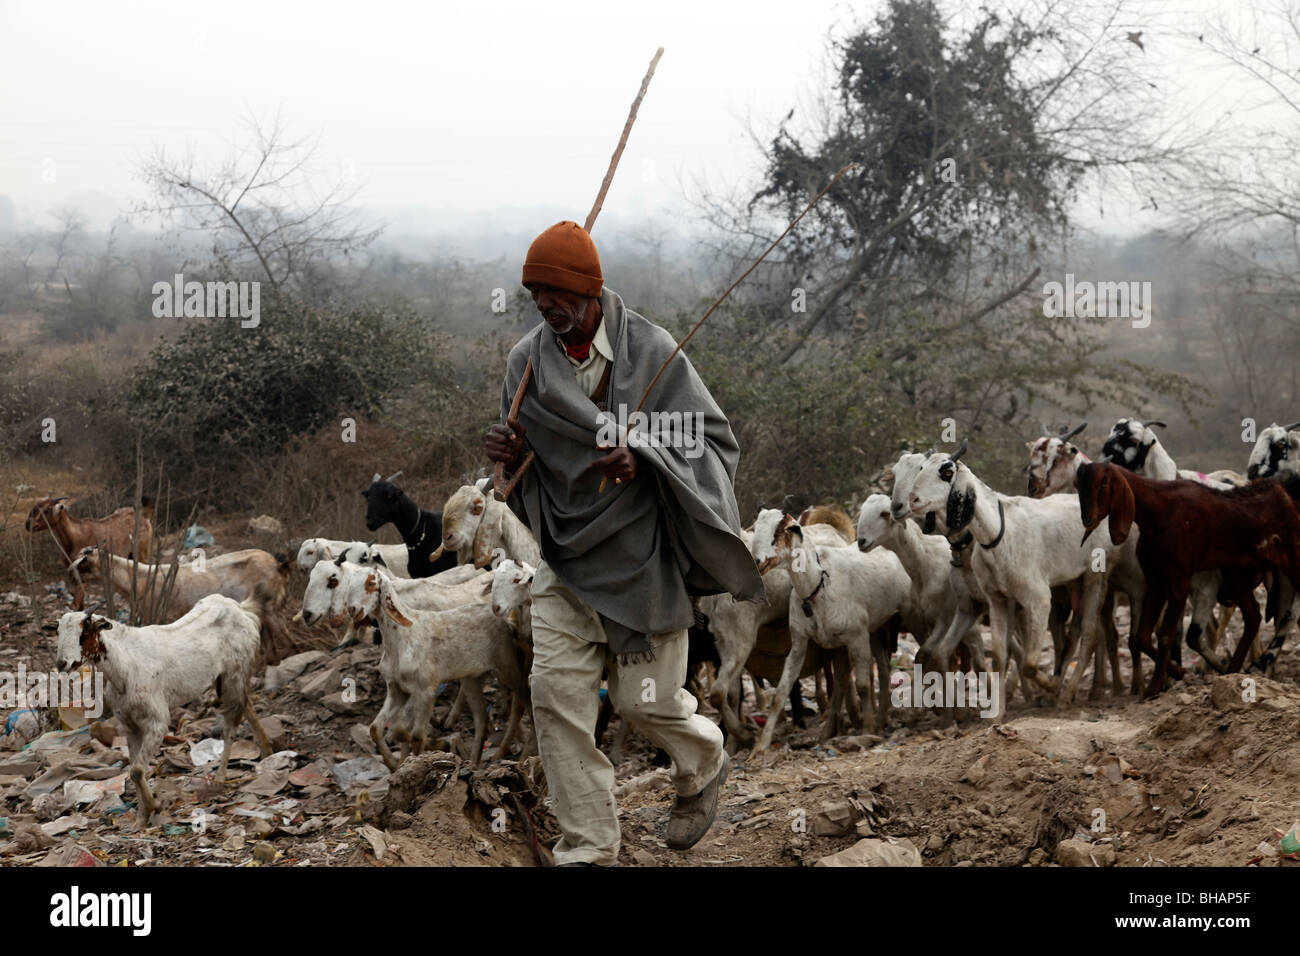 H F Cattle India traditional Ind...